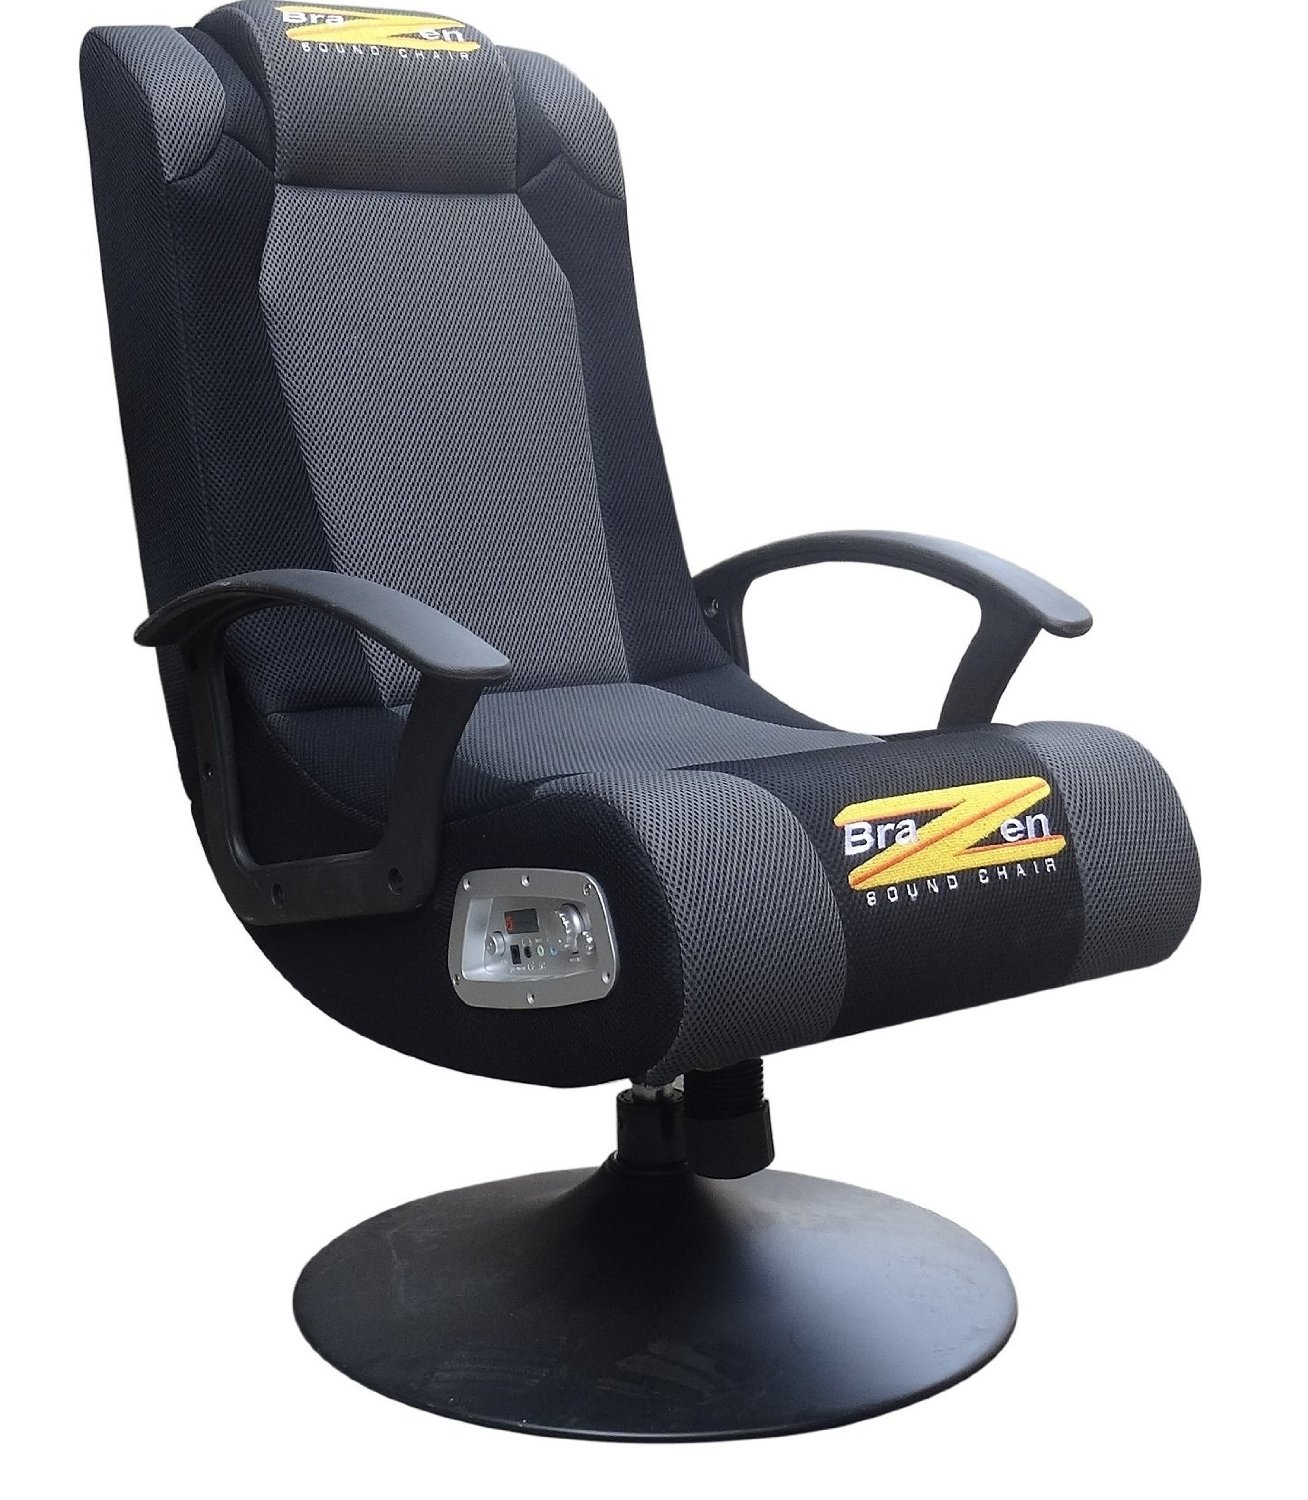 Console Gaming Chair Reviews 2016  PC Gaming Chairs UK